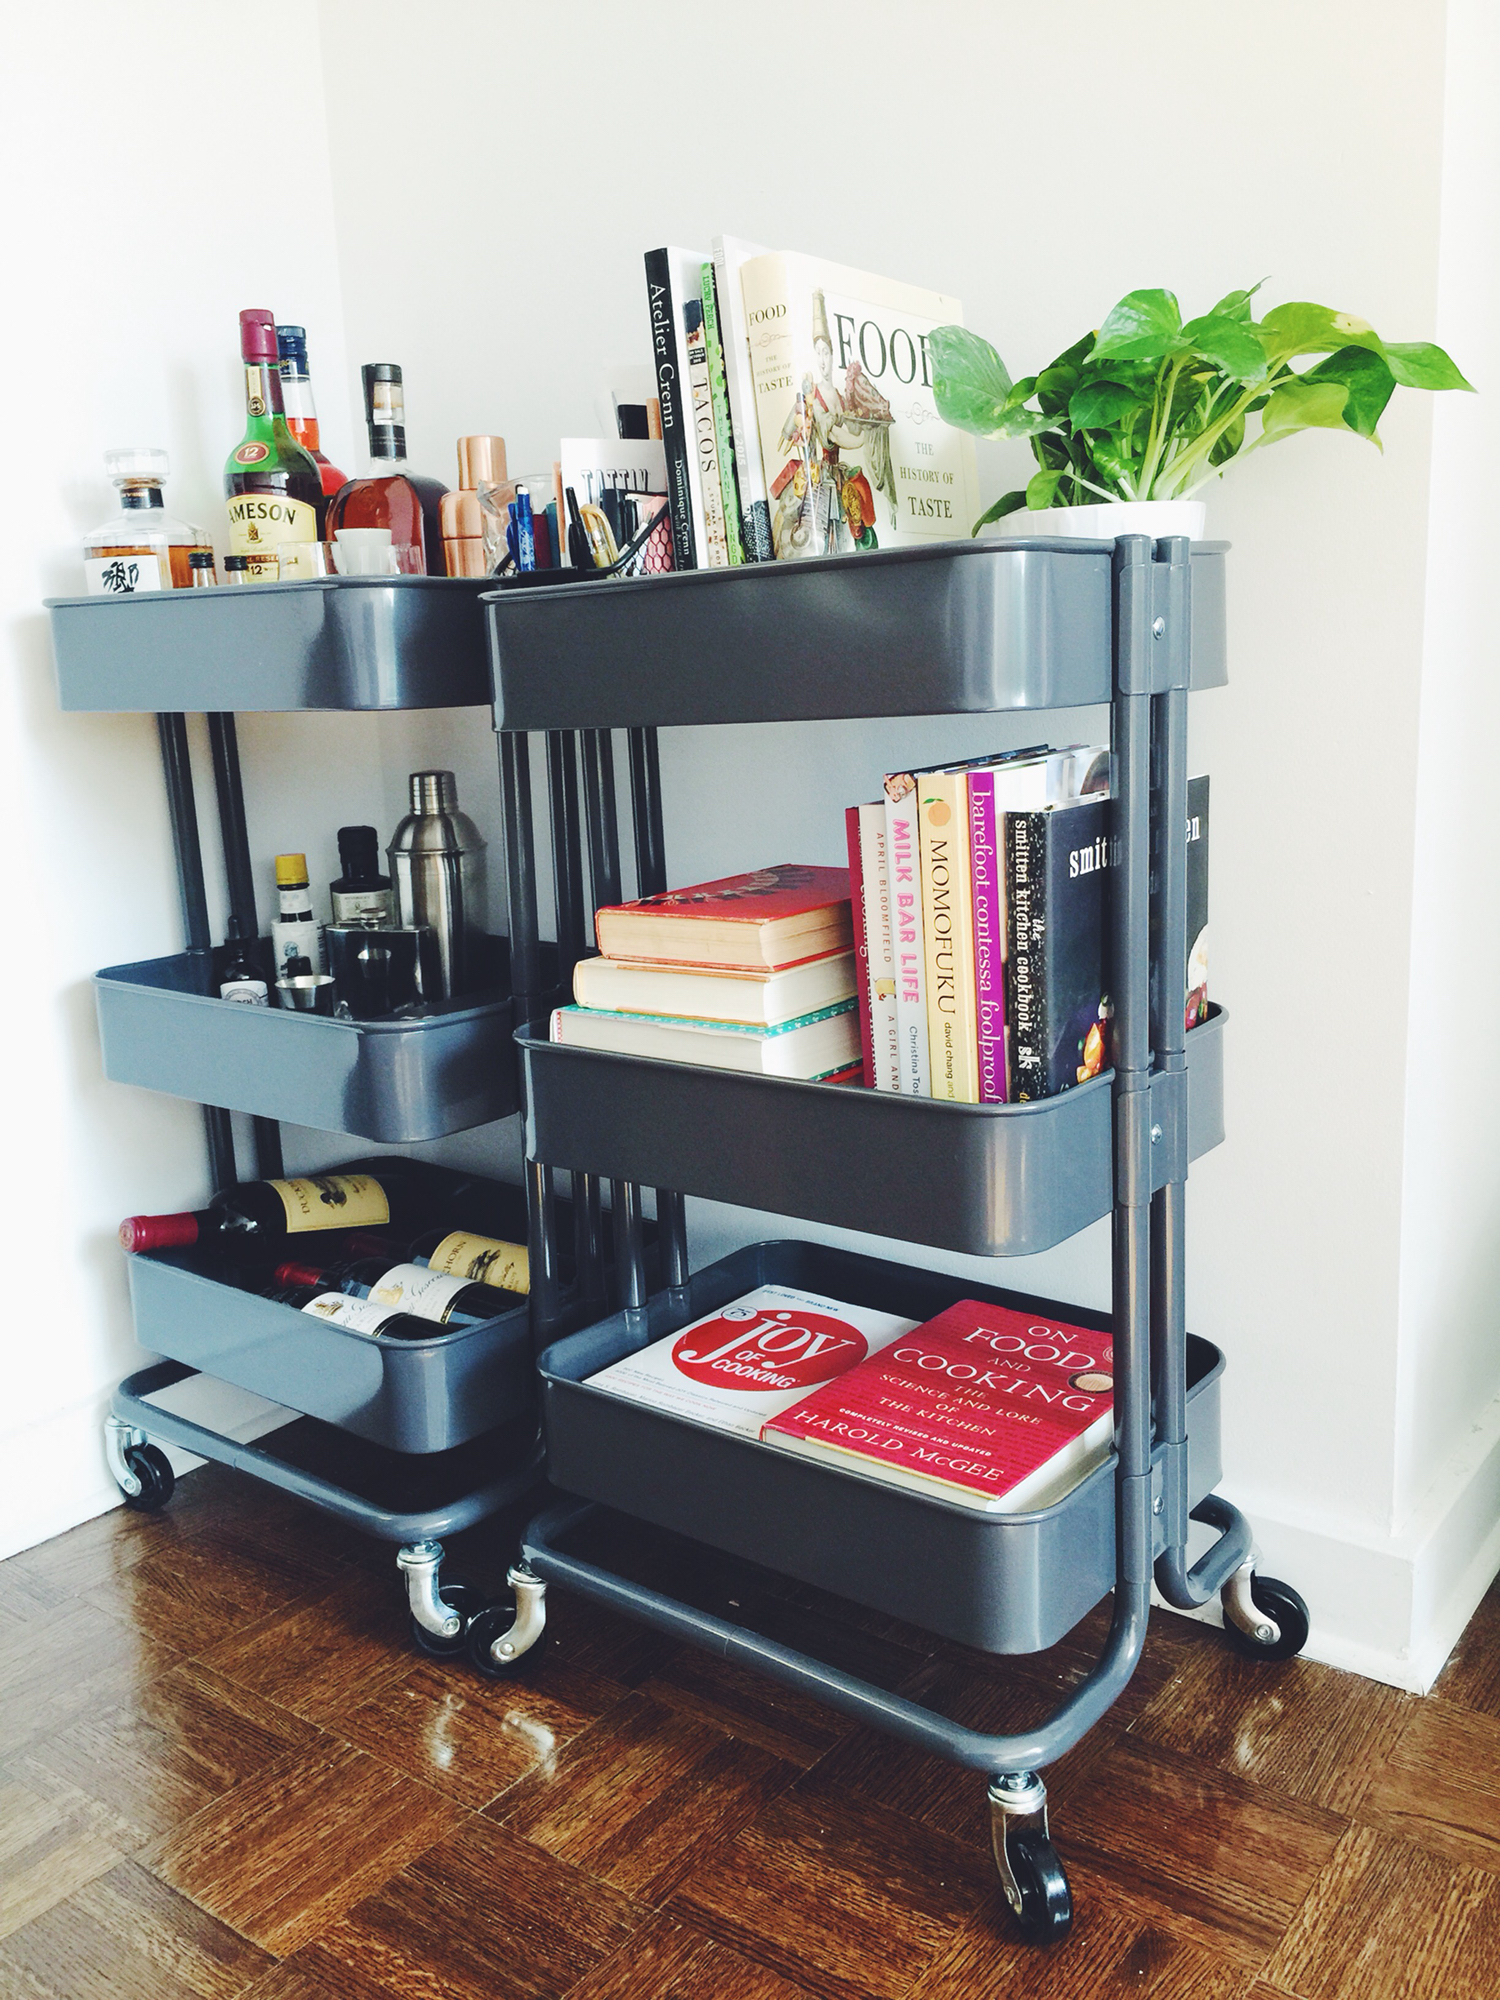 Two black carts here are used as a mixing station and as a storage rack for cooking books.